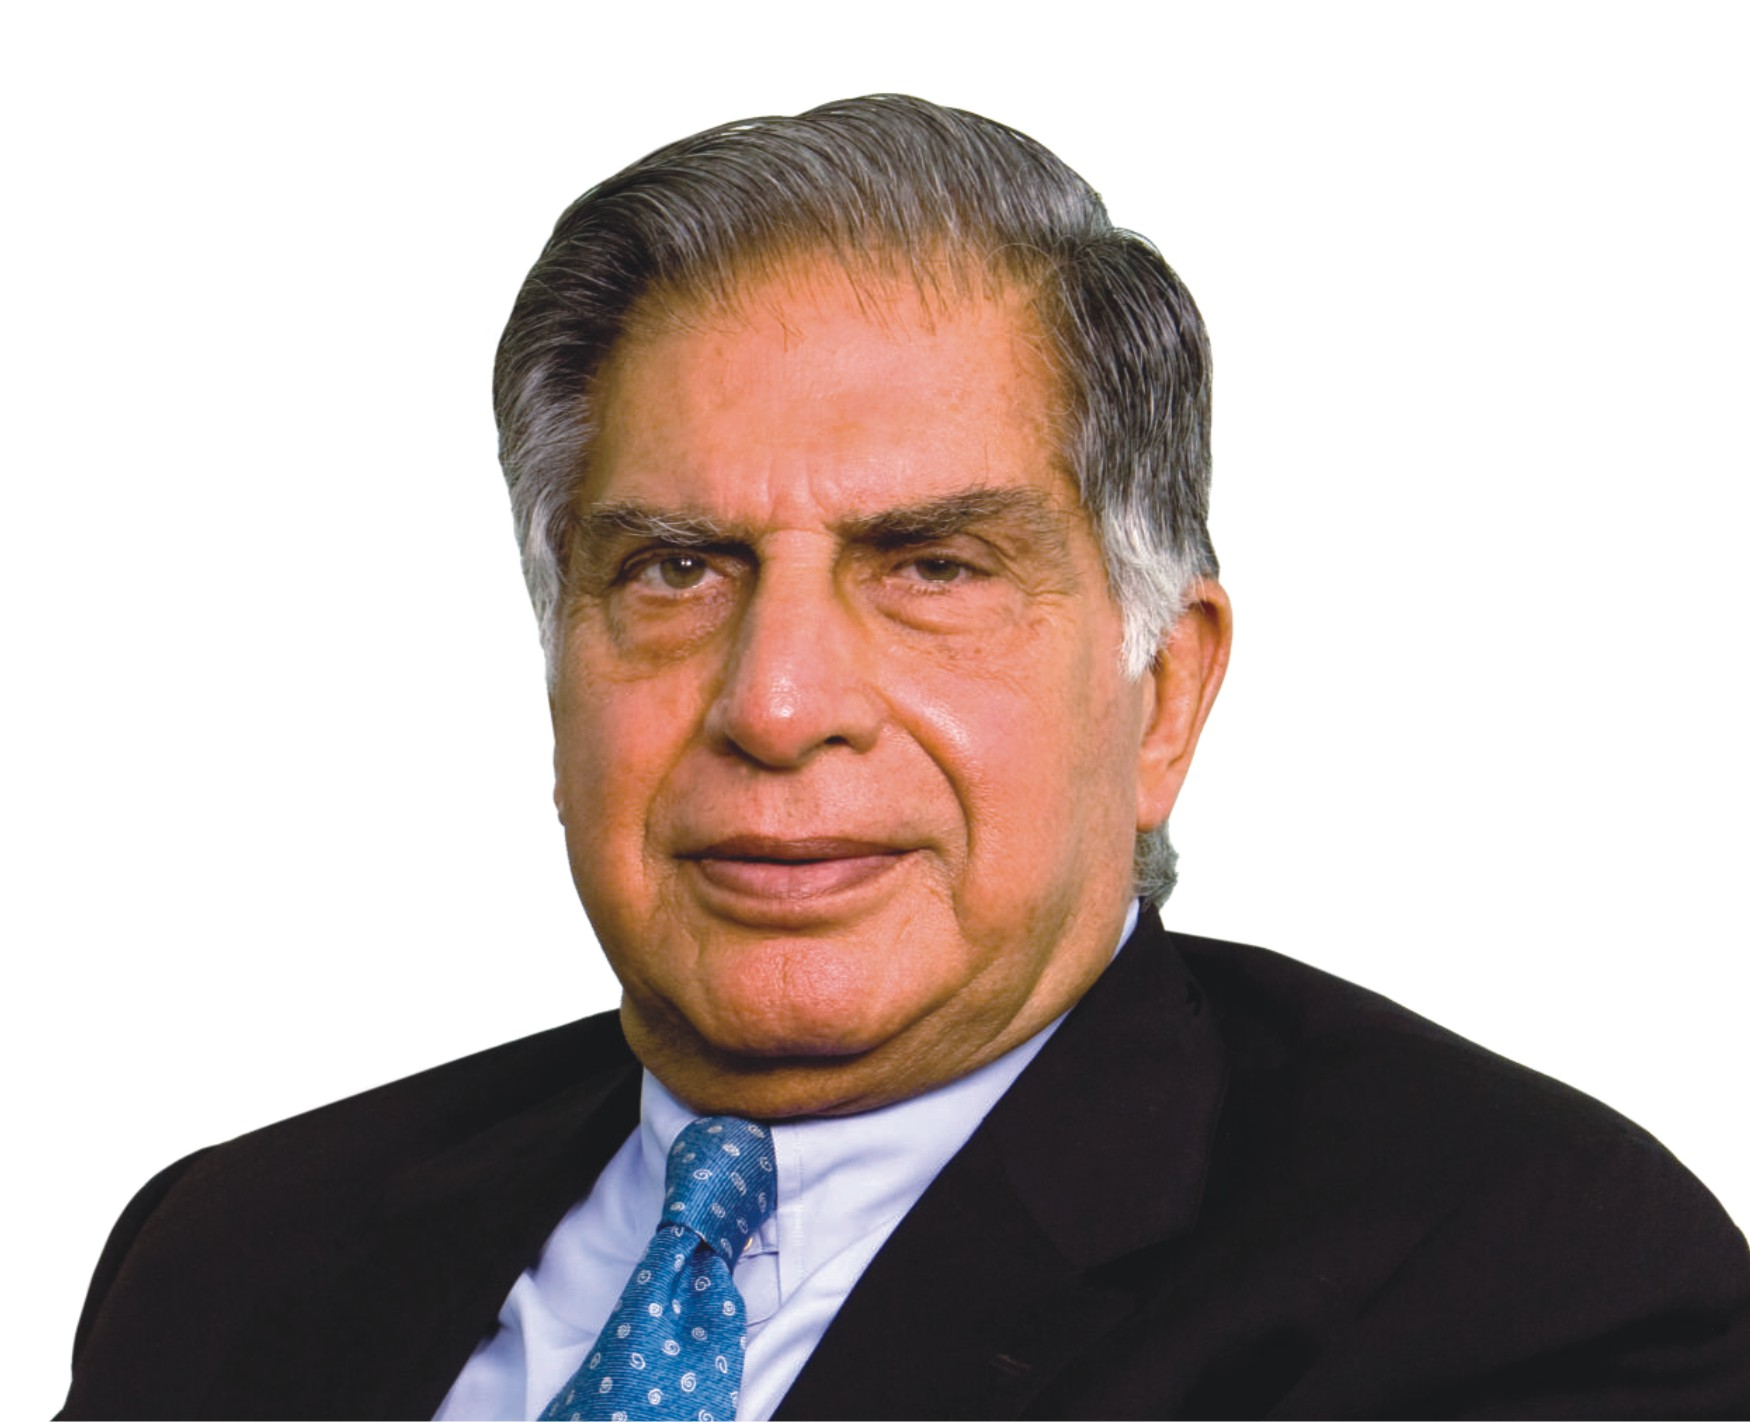 Ratan Tata, Interim Chairman of Tata Sons. Chairman – Tata Trusts